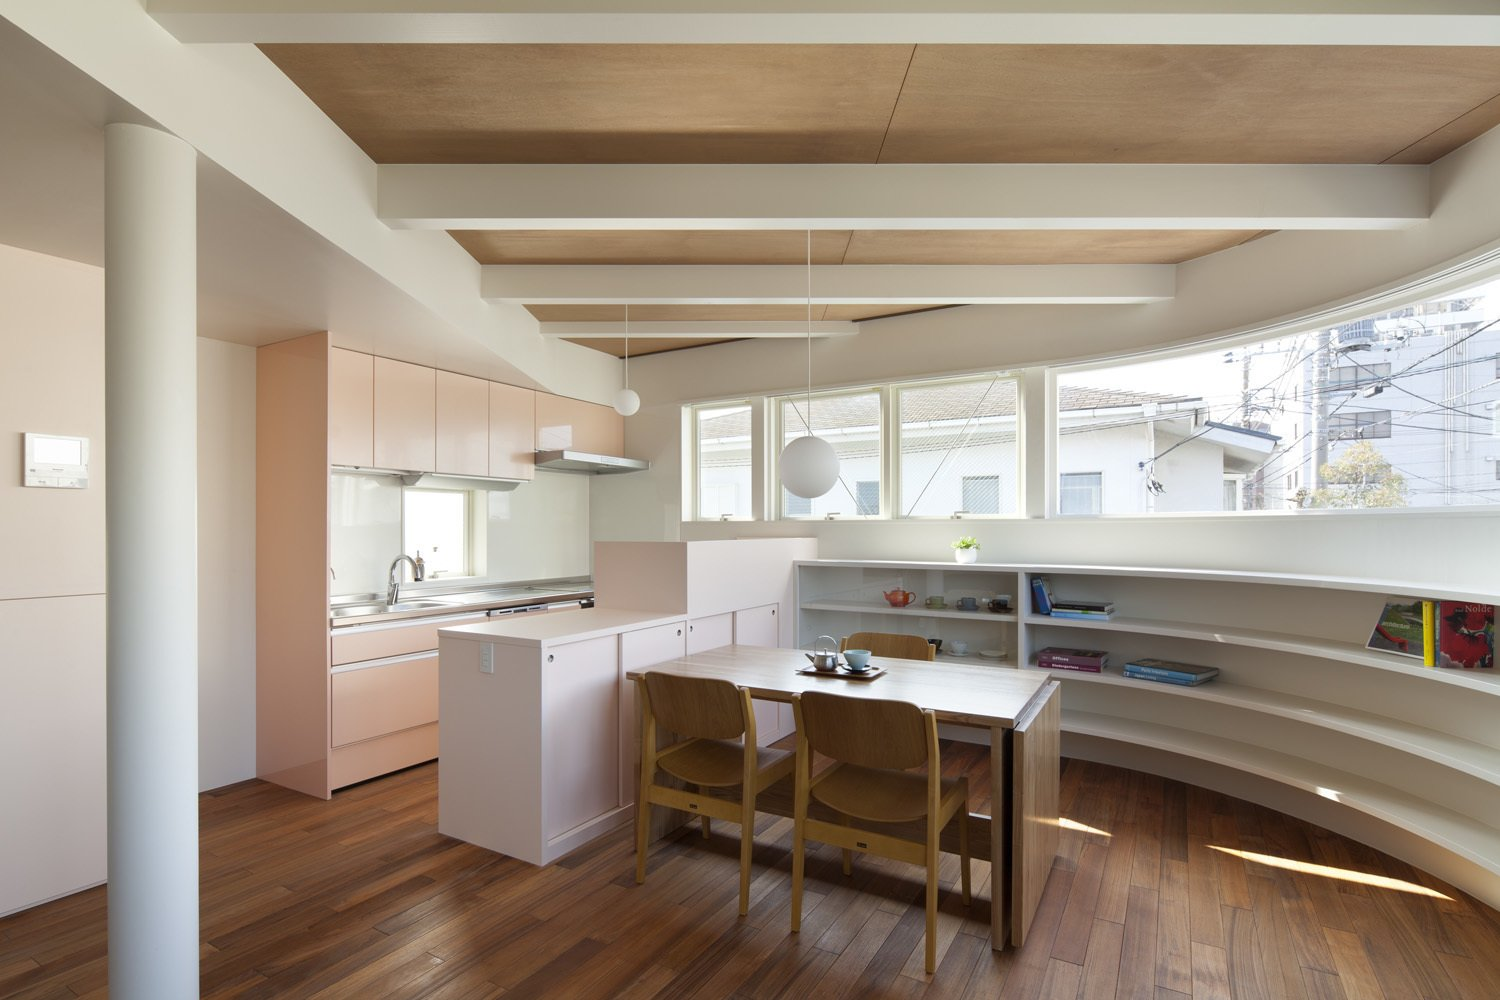 The kitchen and dining area features an integrated system by LIXEL, a custom-made table, and Tendo chairs. A bespoke, curved bookshelf wraps around the wall beneath a panoramic window.